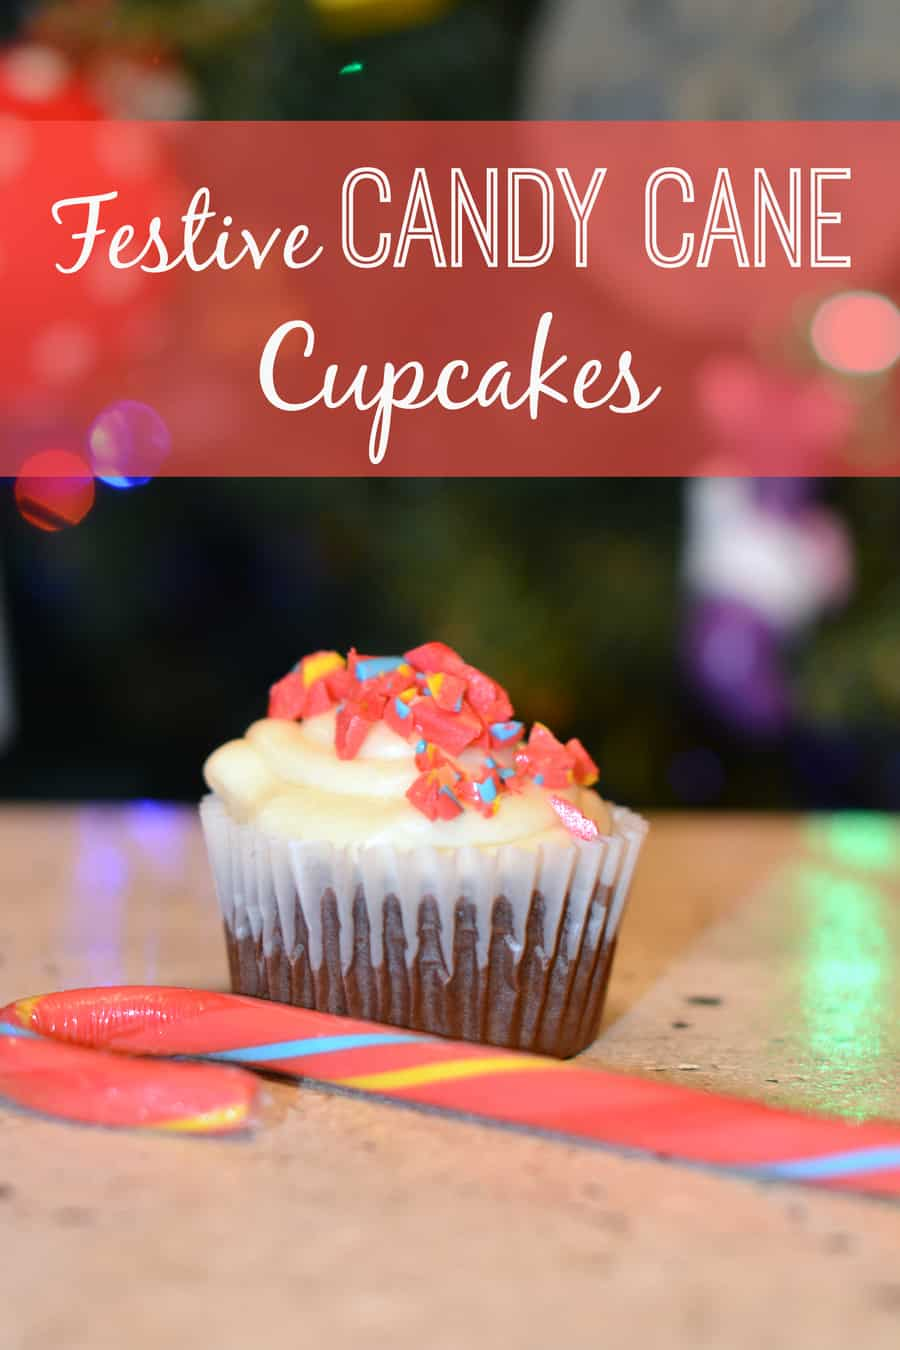 Festive Candy Cane Cupcakes